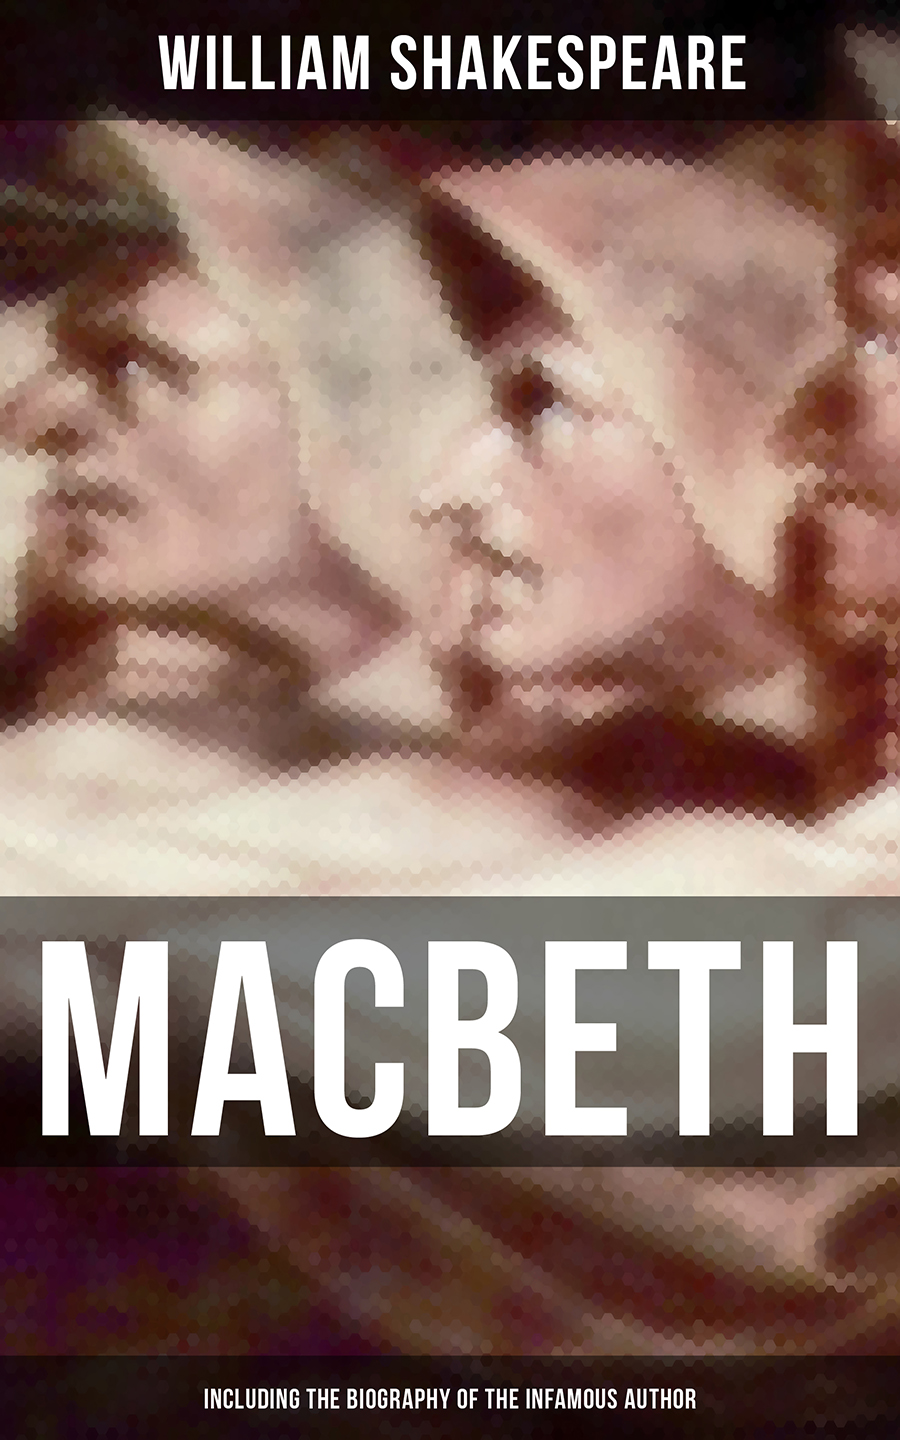 William Shakespeare Macbeth (Including The Biography of the Infamous Author) john worthen the life of william wordsworth a critical biography